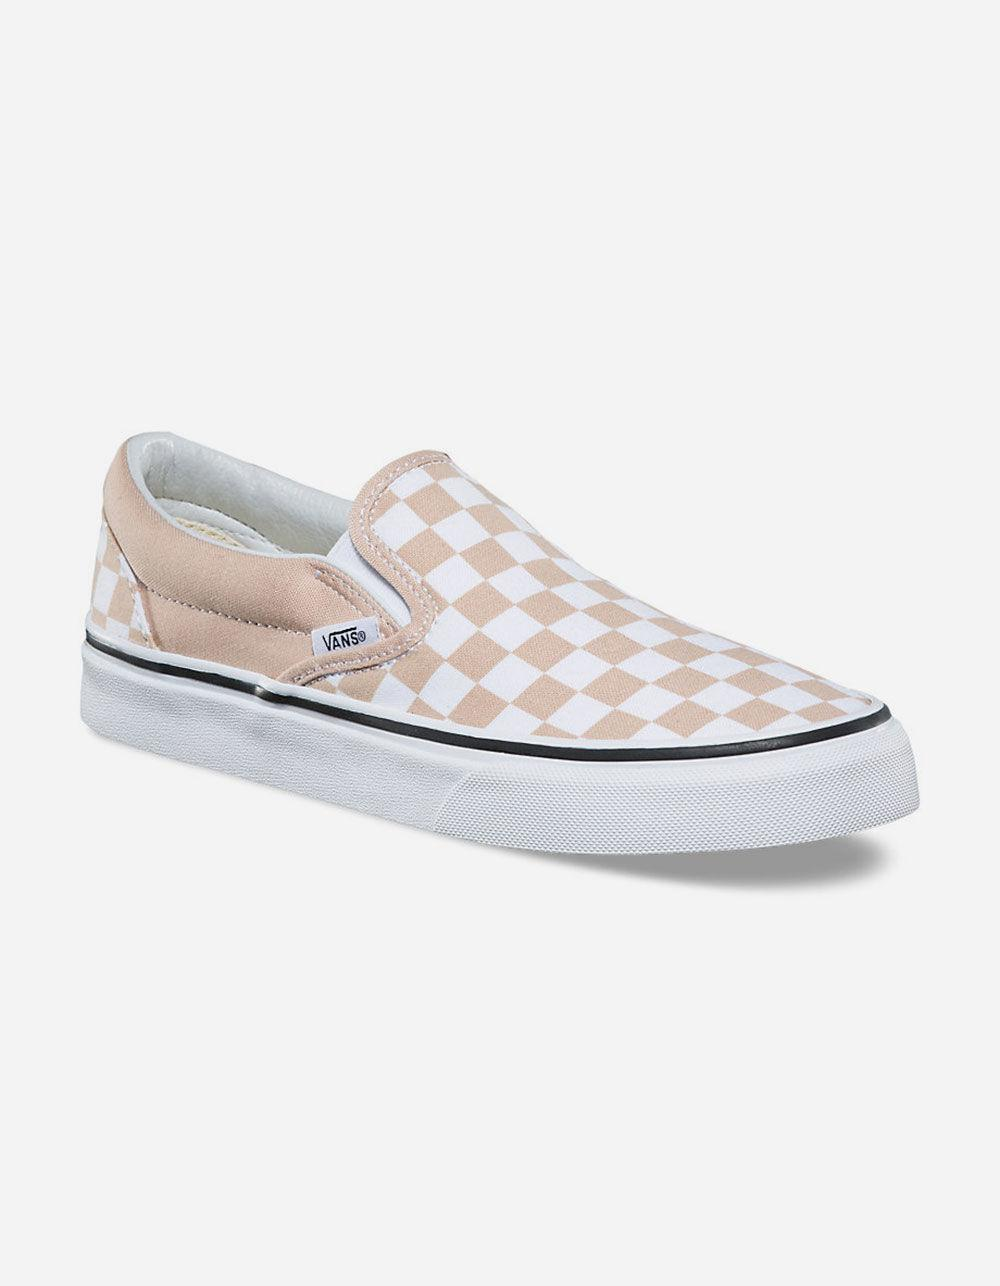 4b74896ed9 Lyst - Vans Checkerboard Frappe   True White Classic Slip-on Womens Shoes  in White